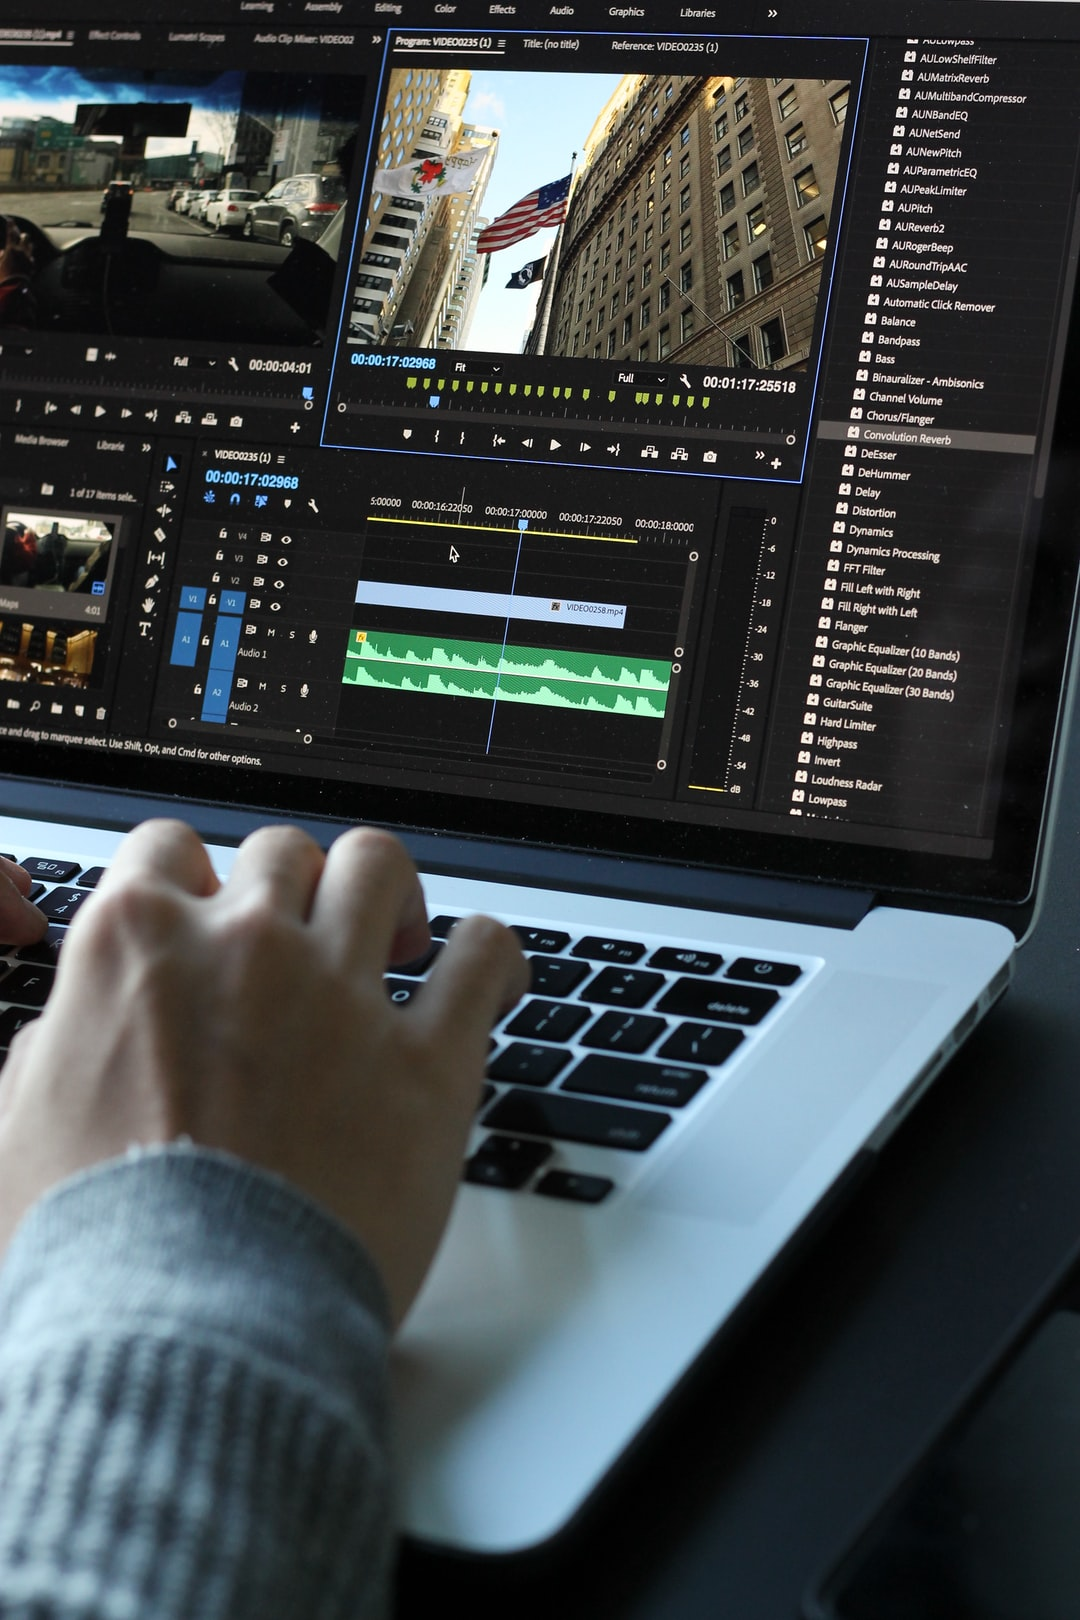 Top 15 Best Free Video Editing Software of 2020